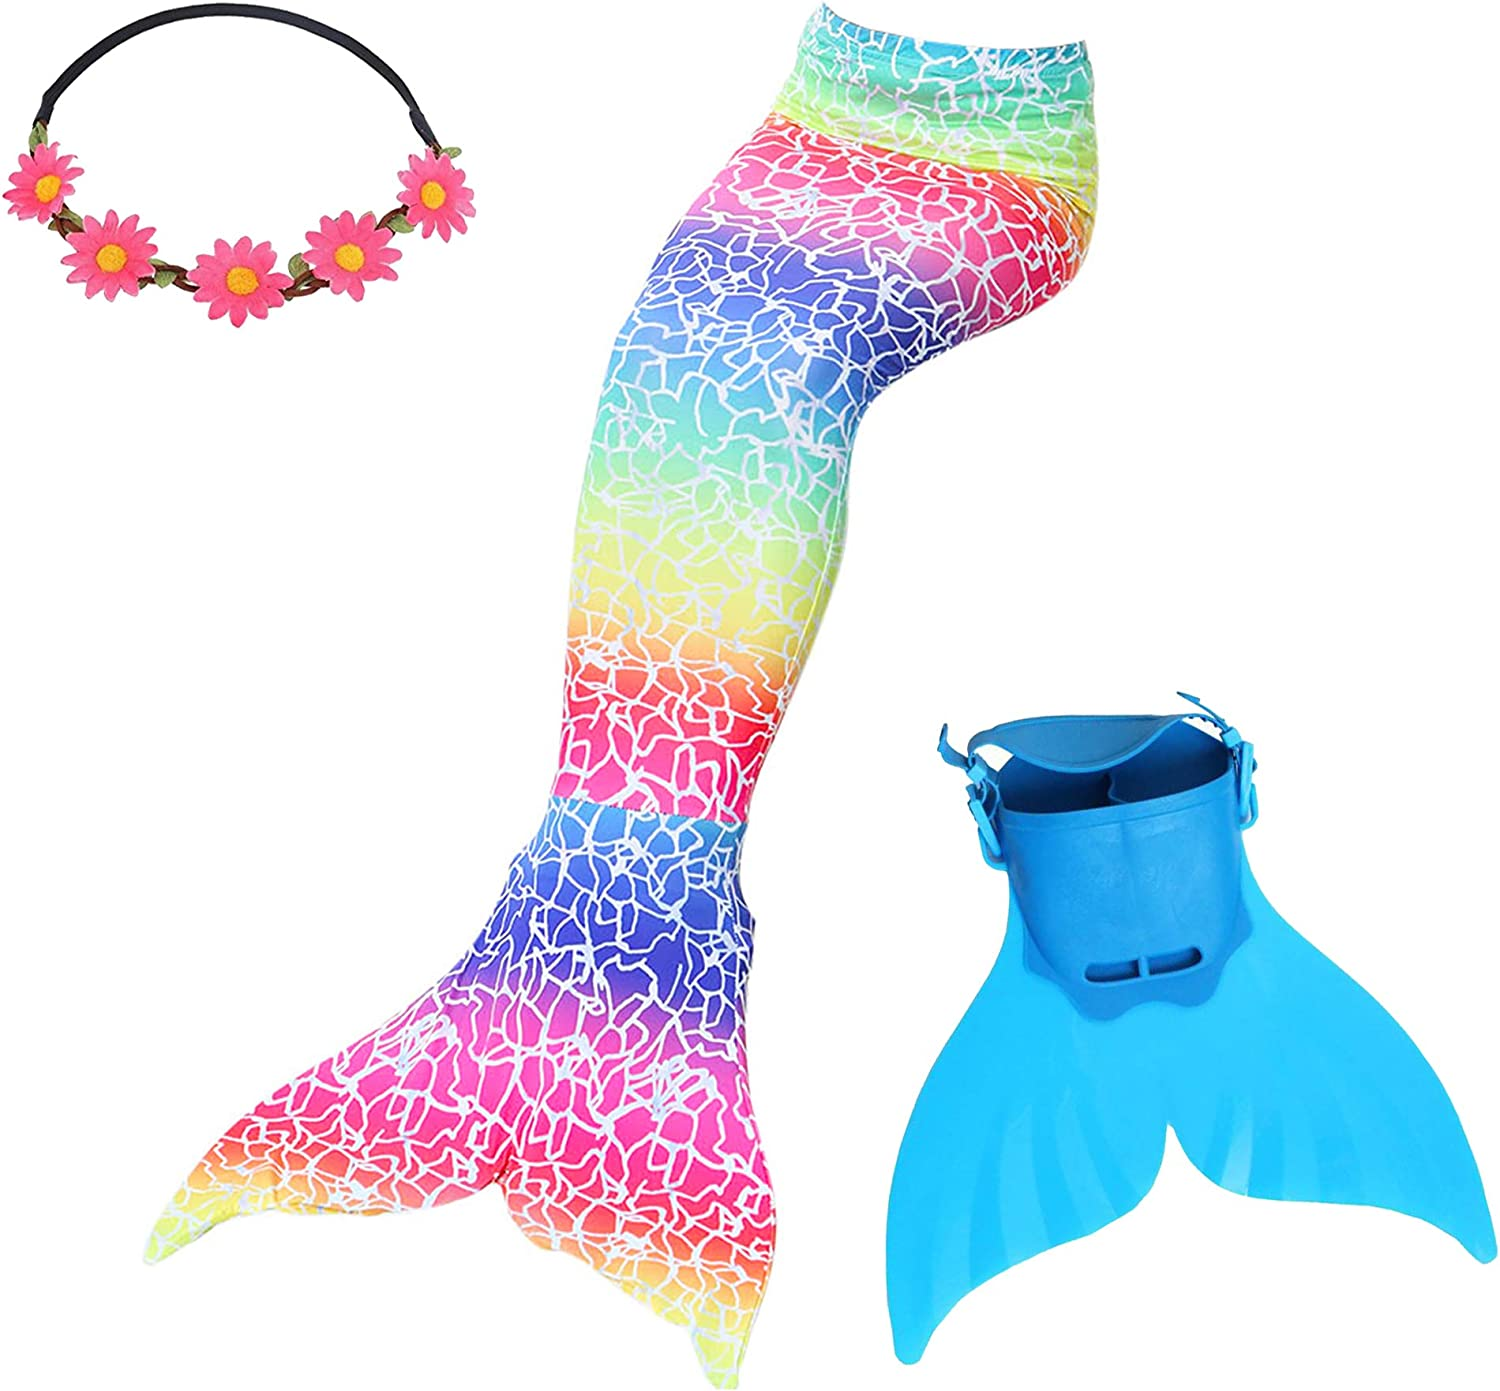 GALLDEALS Free shipping Mermaid Tail Swimsuit Bathing Costume Suit Cosplay wit Max 76% OFF